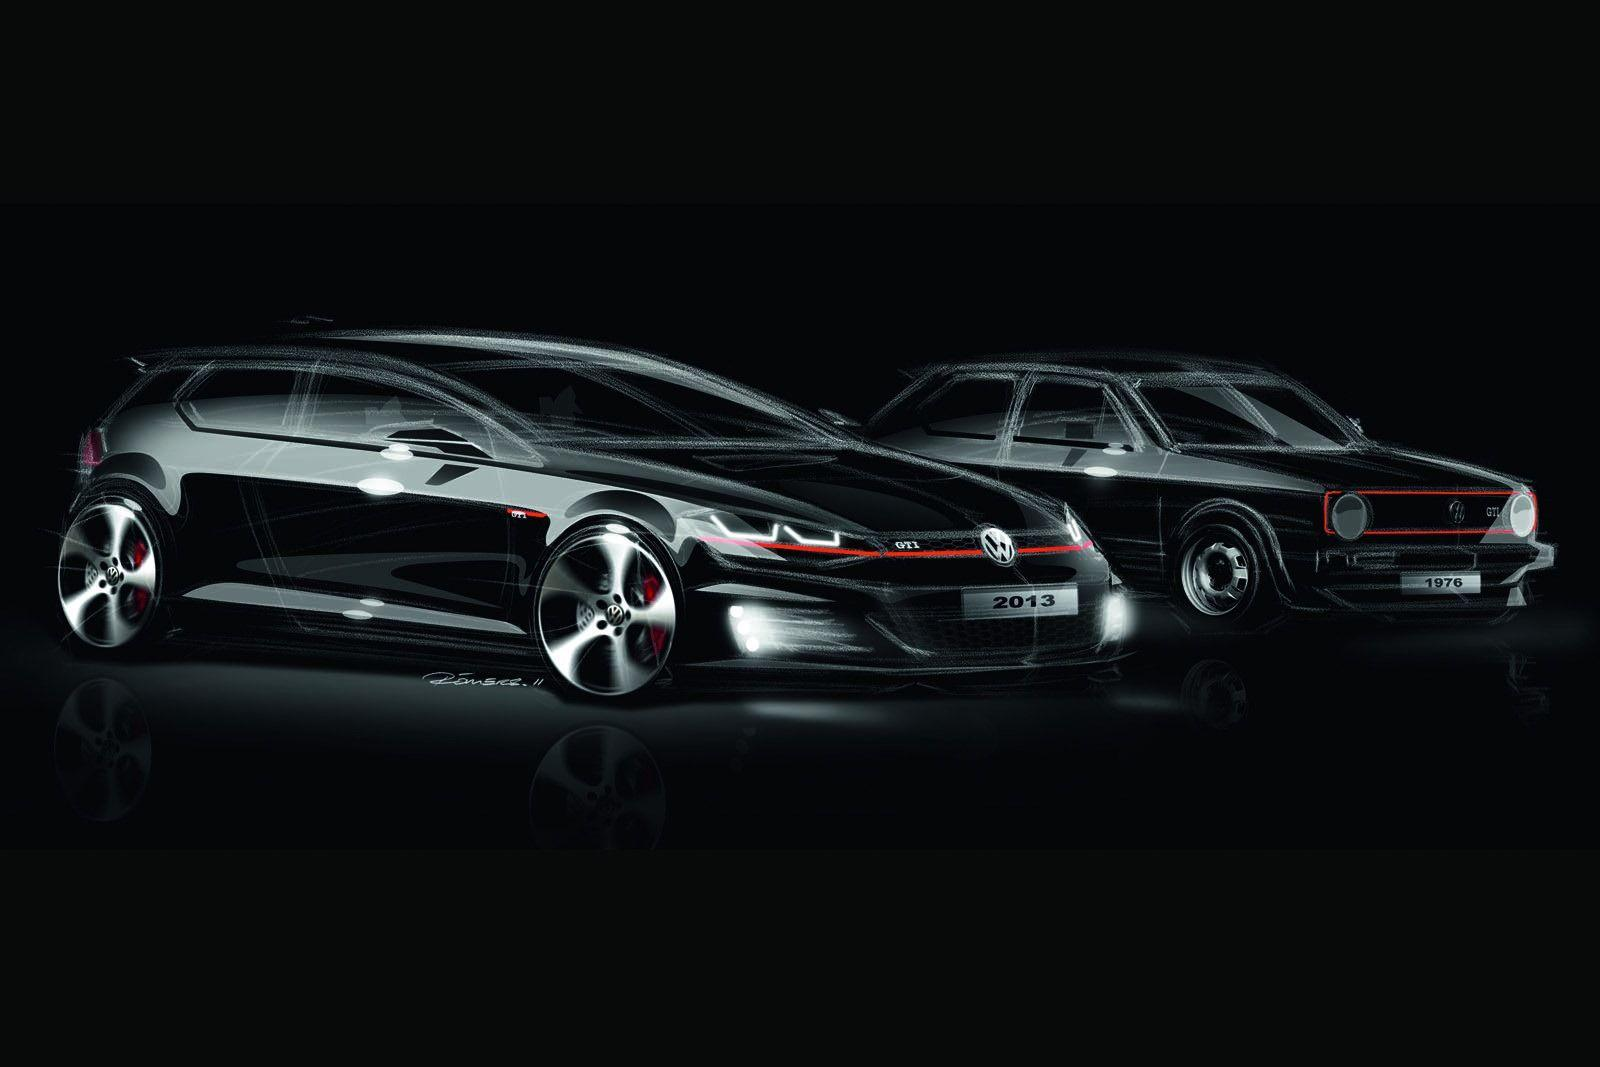 Volkswagen Golf GTI Mk7 2013 photo 97112 pictures at high resolution